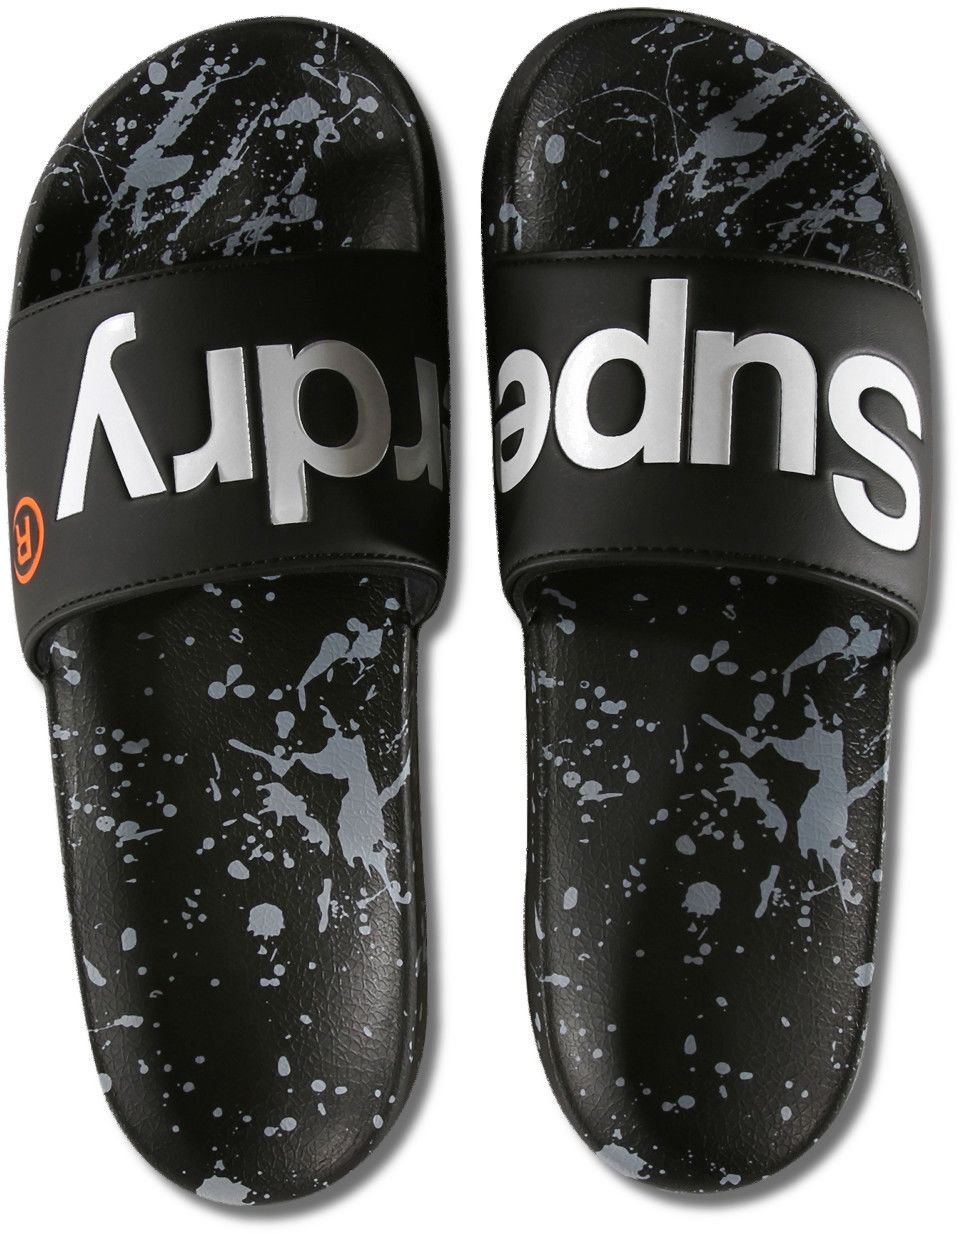 Superdry Beach Sliders Black